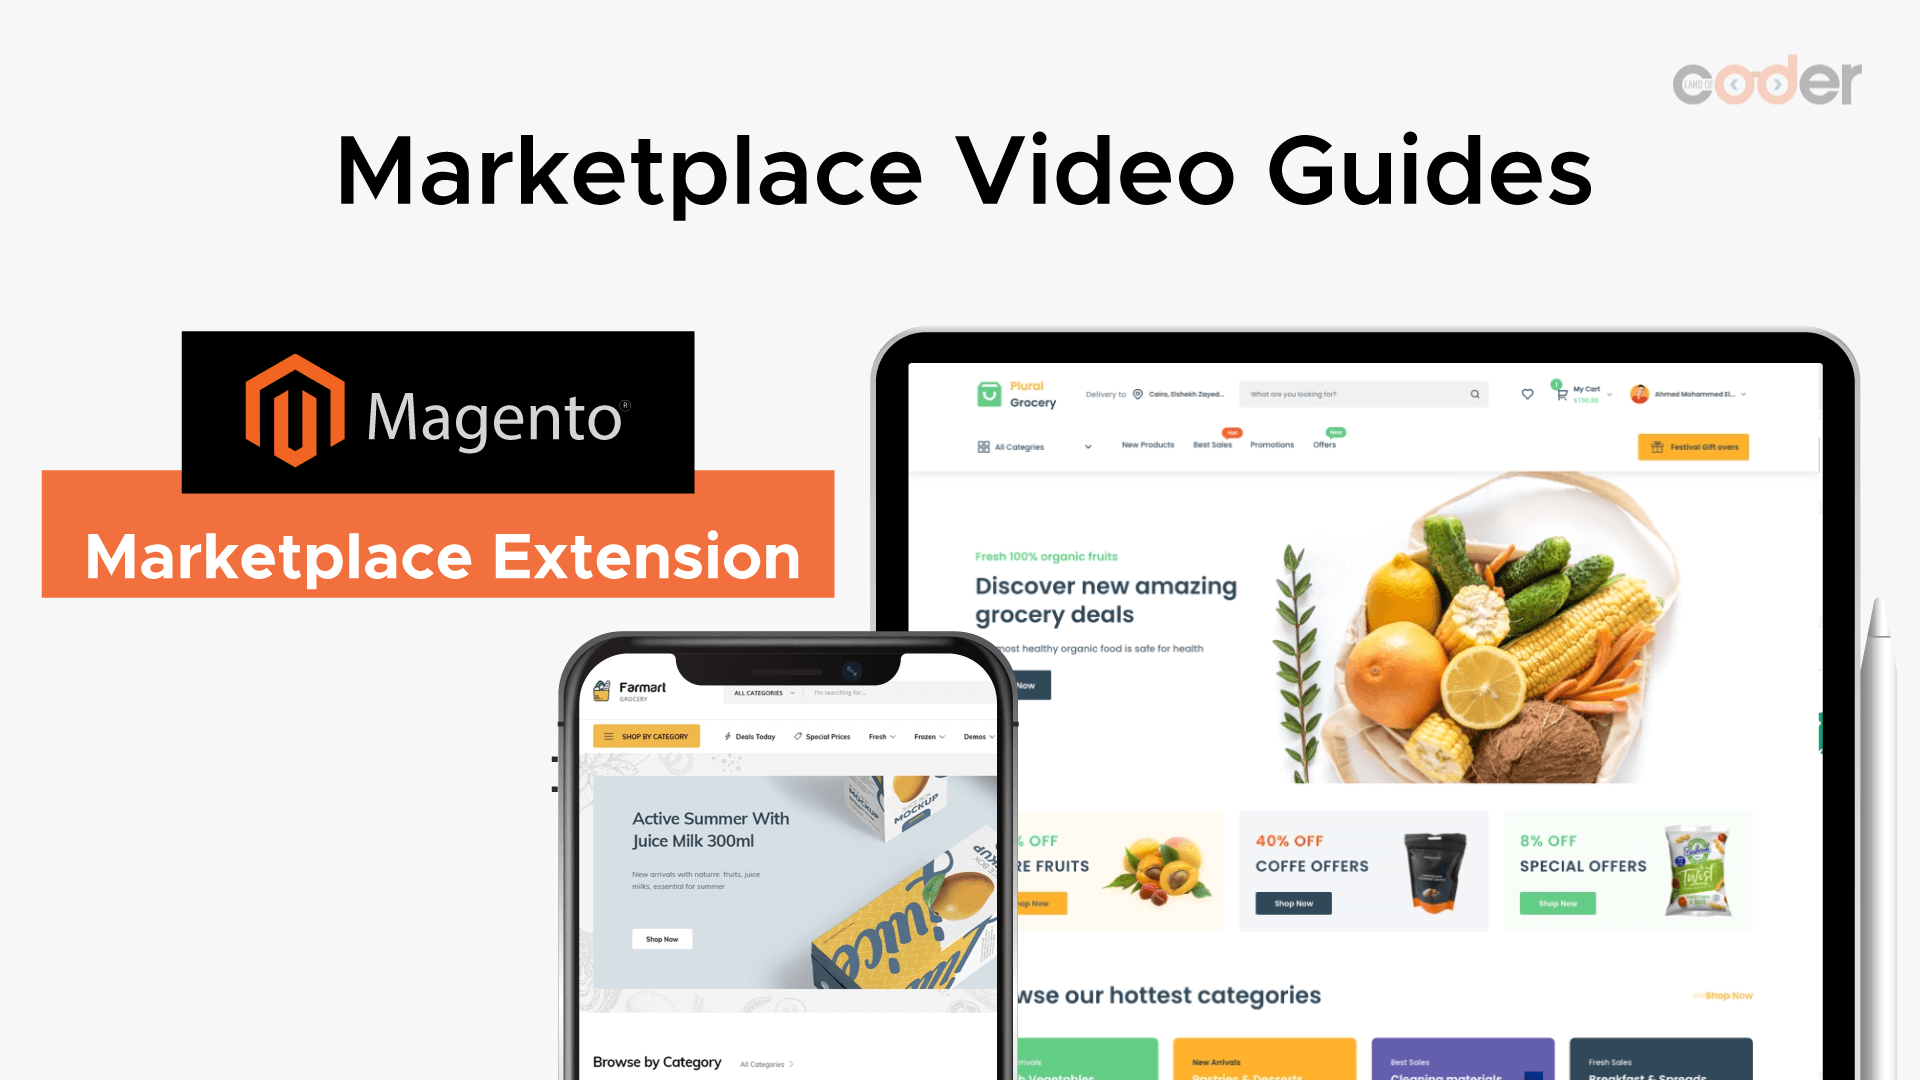 Magento Marketplace Extension video guide